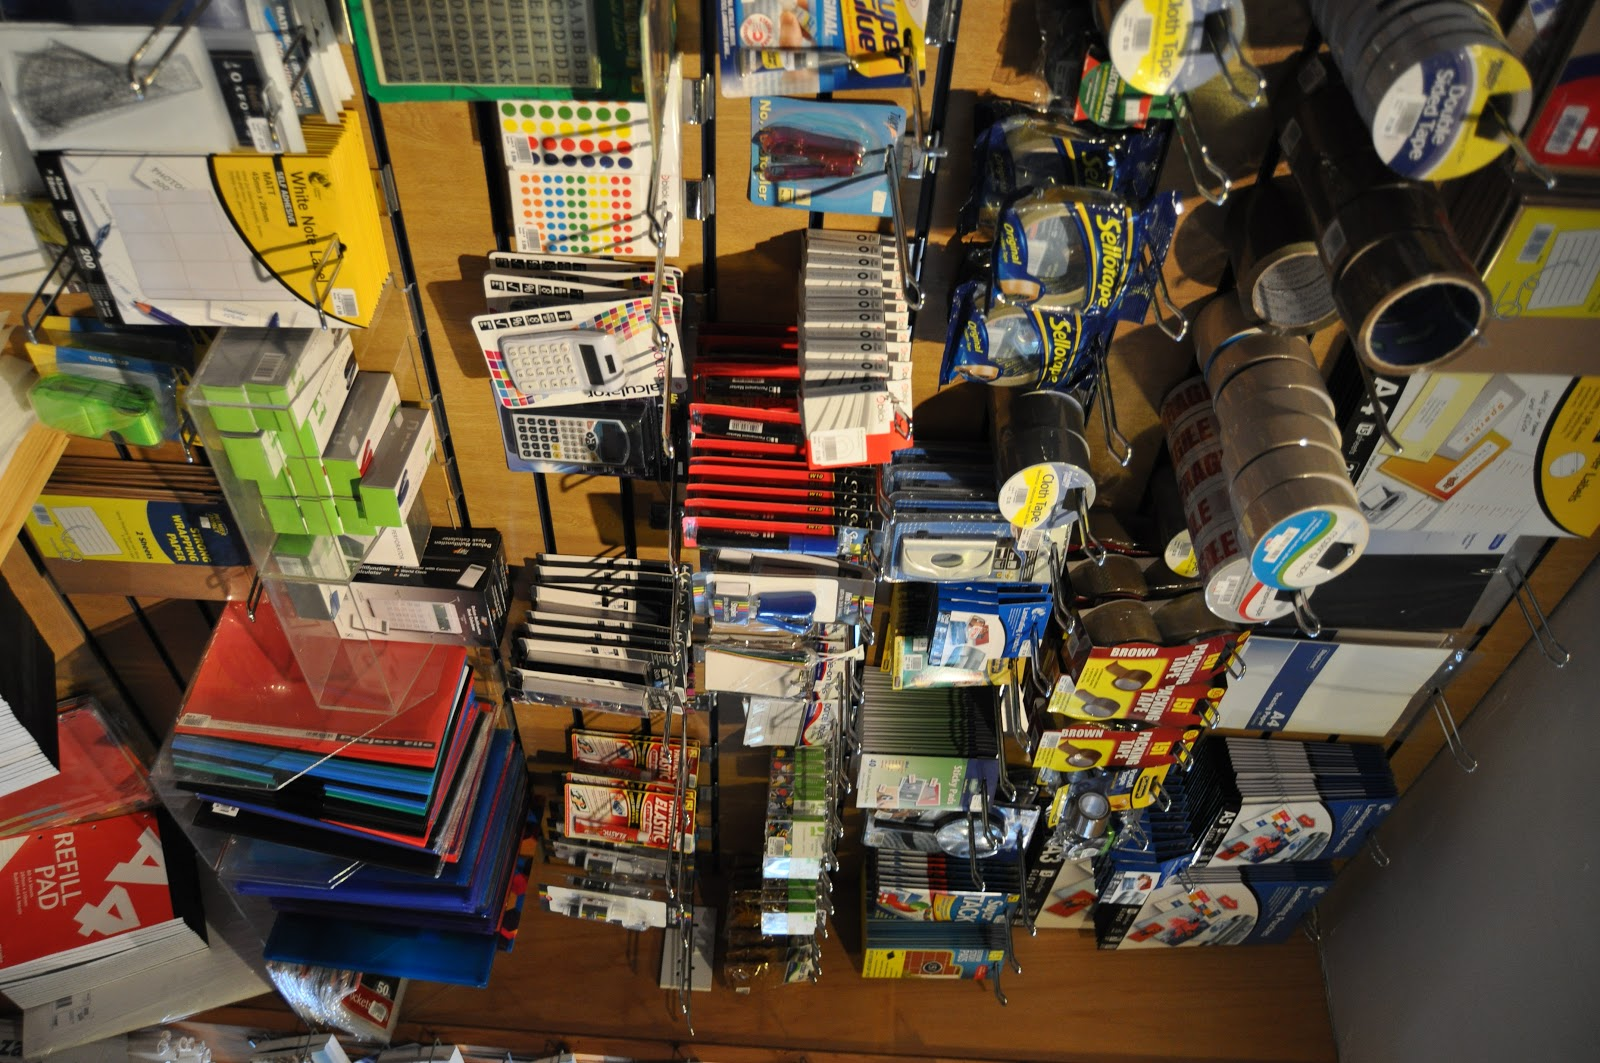 Stationery Series Tackle Books Scotland Office Supplies For Businesses